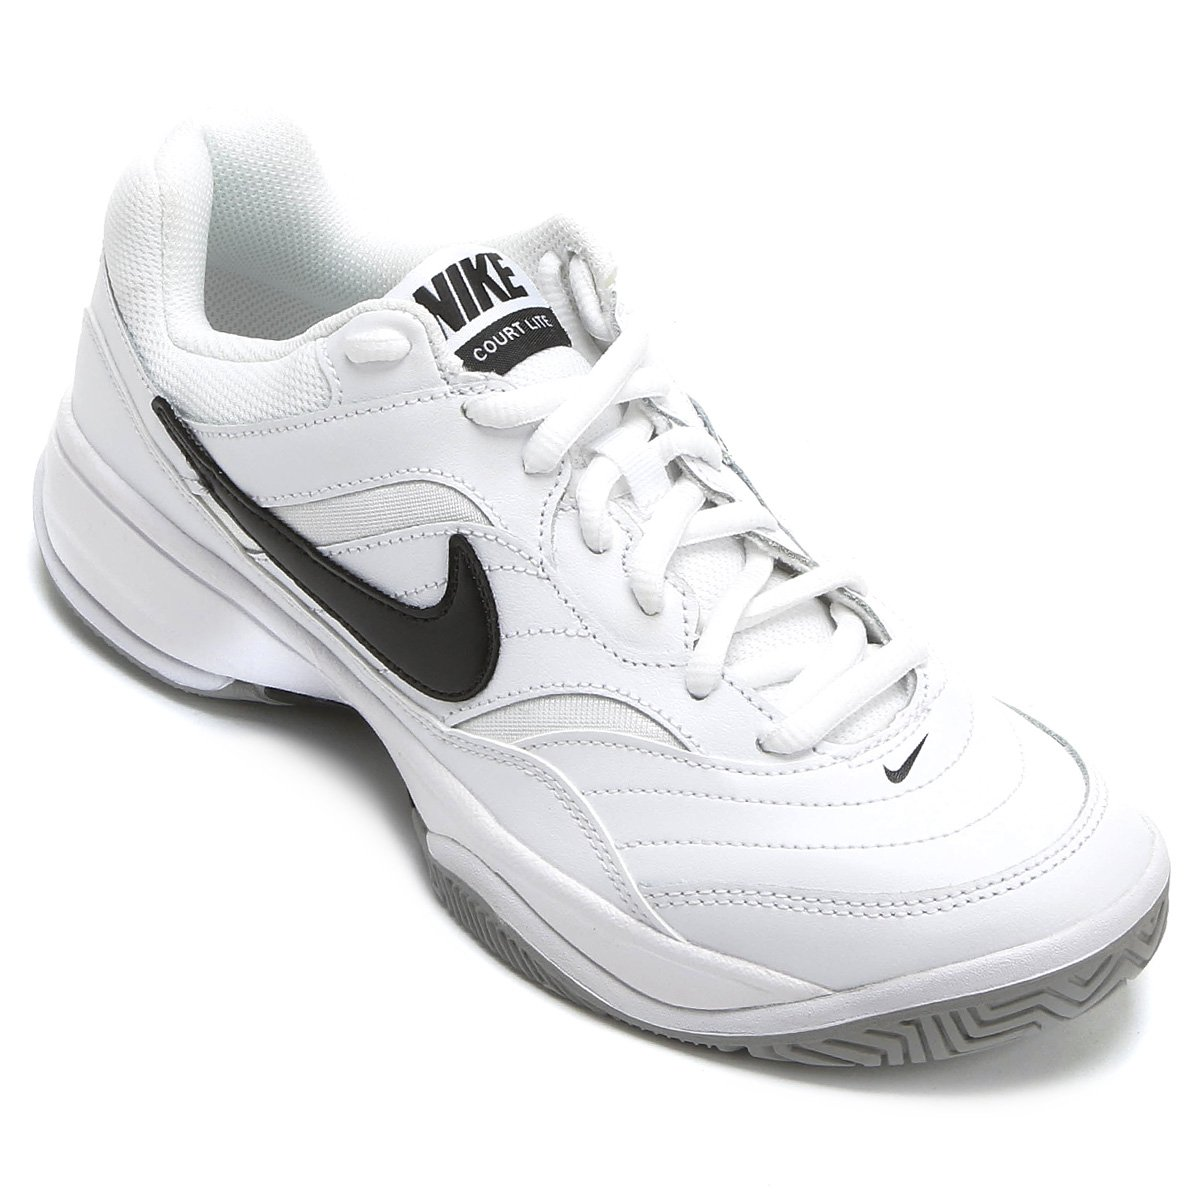 new product c5978 ff8c4 Tenis Nike Court Lite 845021-100